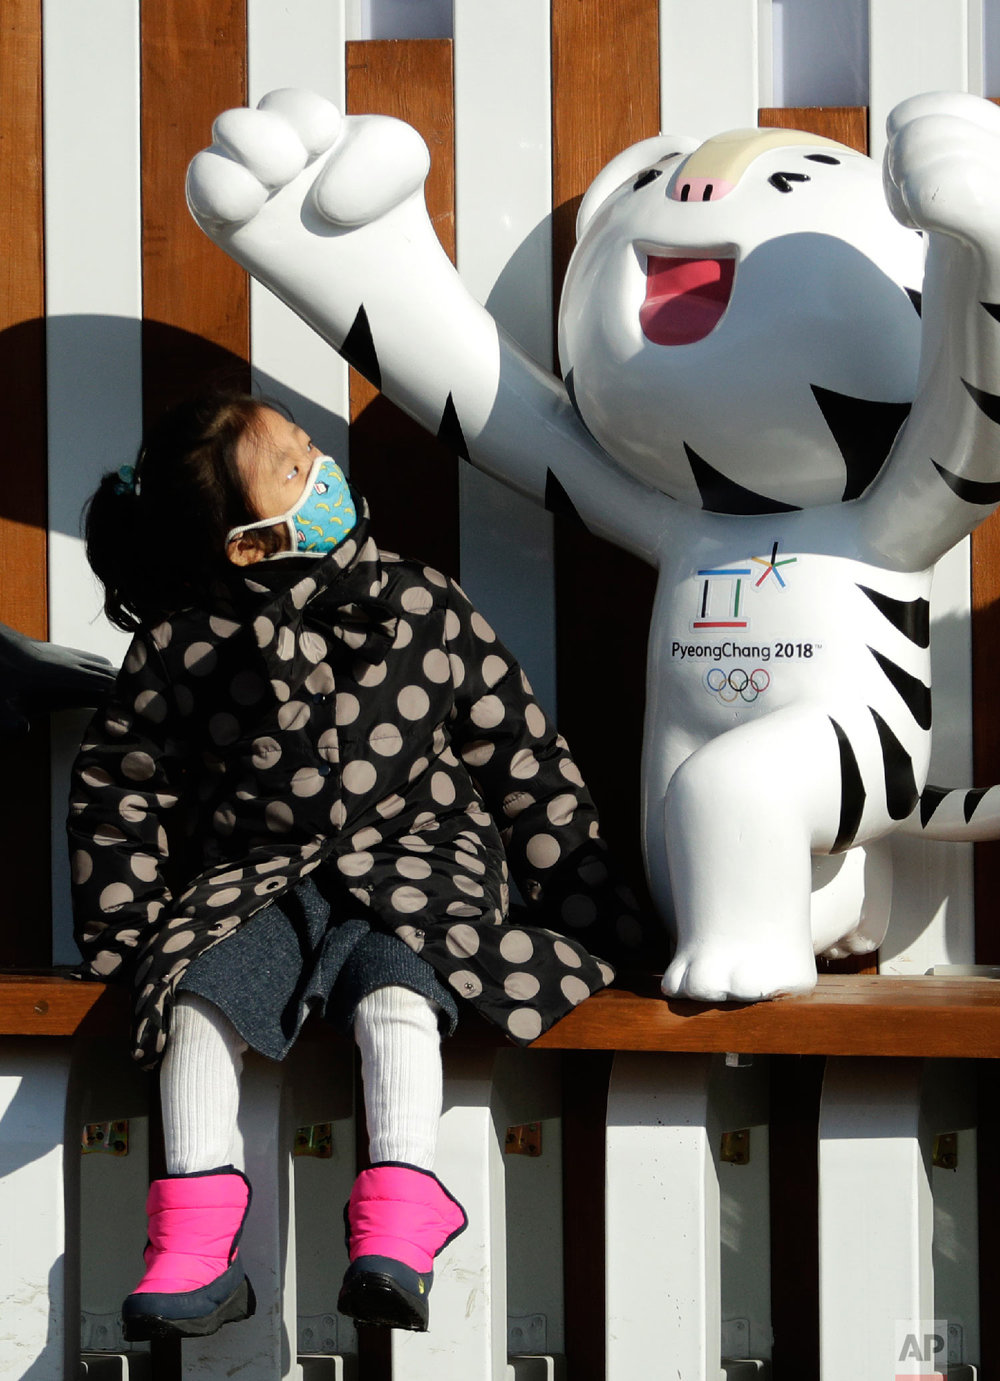 A young girl looks at an Olympic mascot at the Pyeongchang Olympic Plaza as preparations continue for the 2018 Winter Olympics in Pyeongchang, South Korea, Sunday, Feb. 4, 2018. (AP Photo/Charlie Riedel)